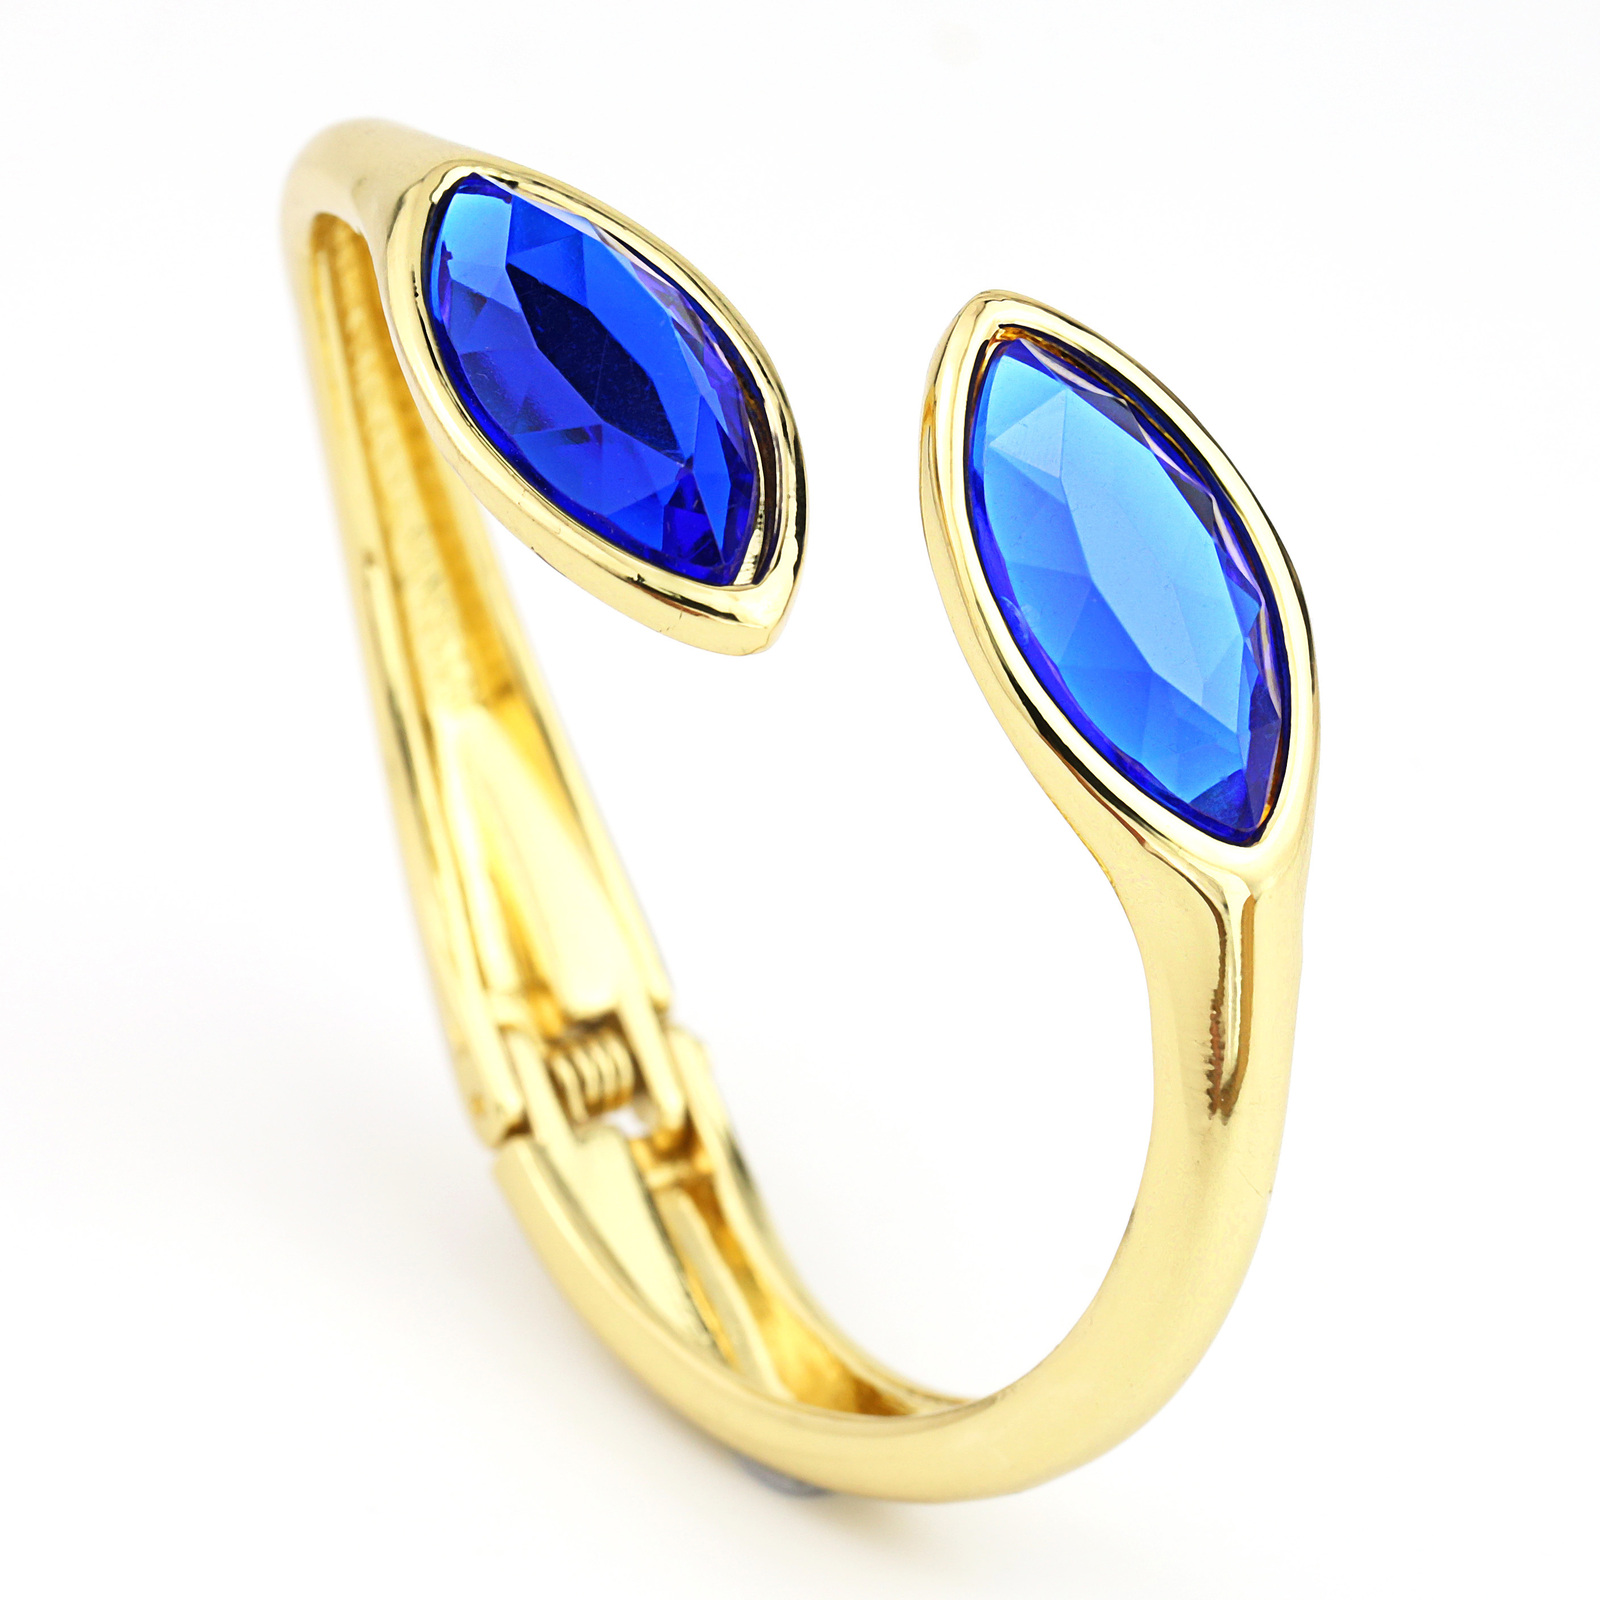 UE-Stunning Designer Gold Tone Bangle Bracelet With Cobalt Blue Faux Sapphires